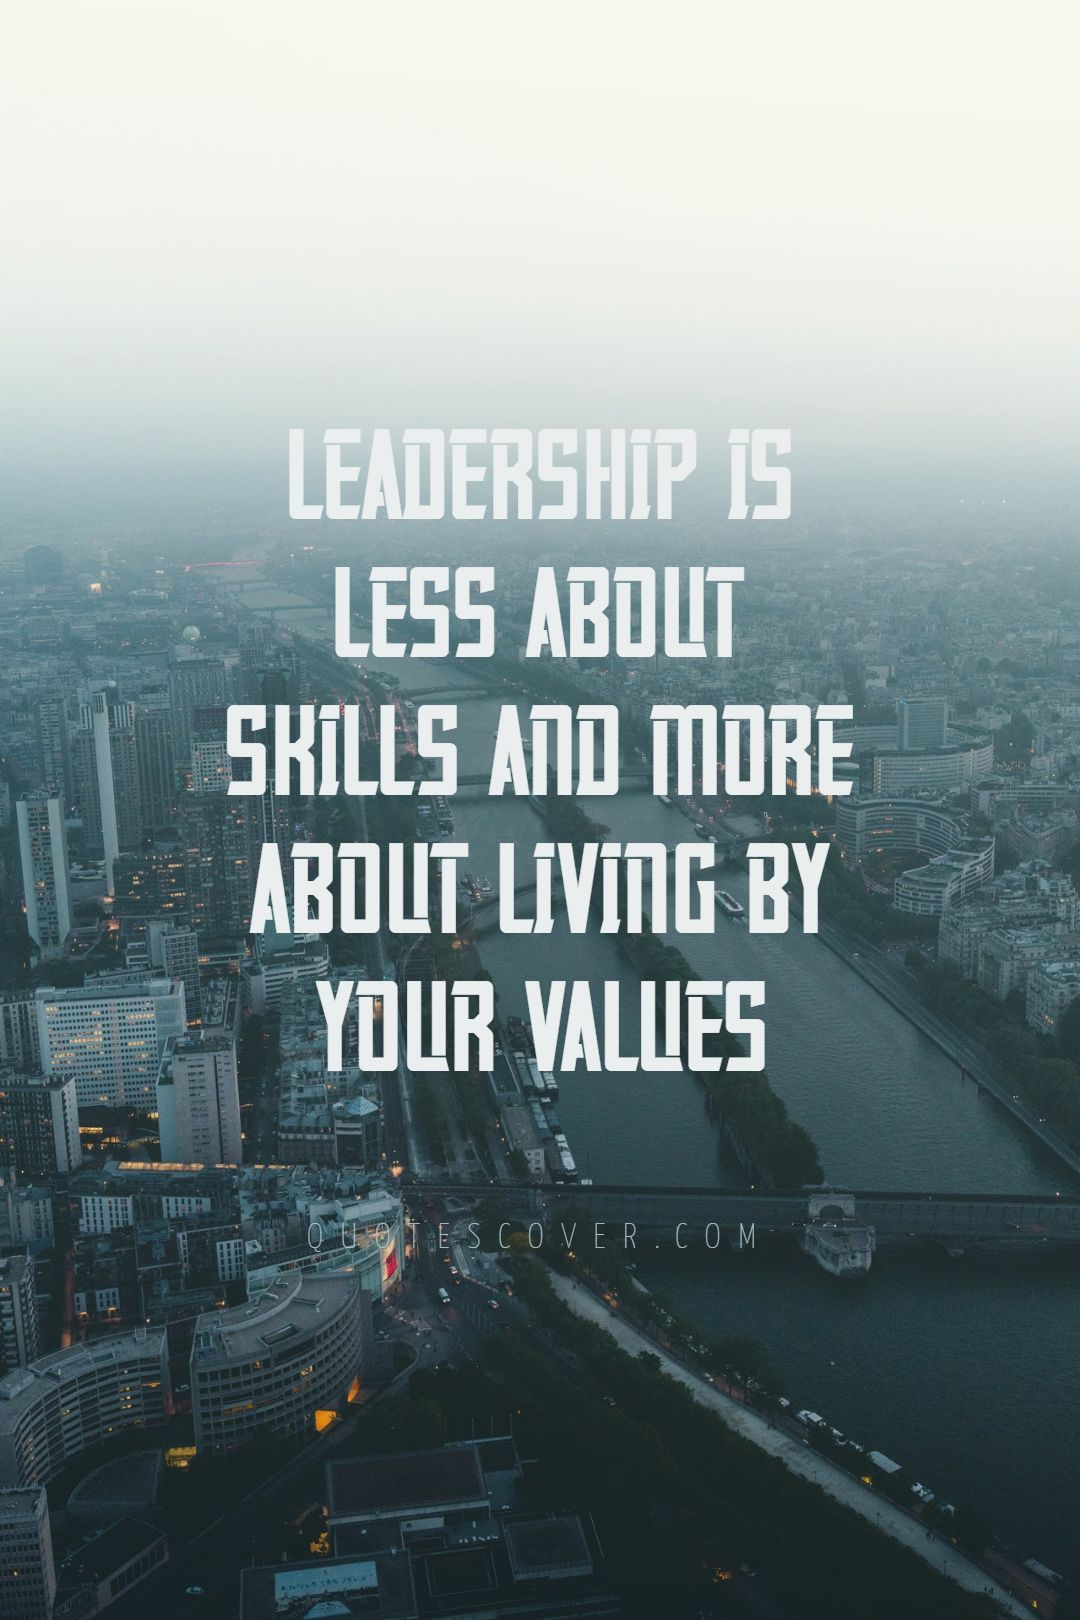 Quotes image of Leadership is less about skills and more about living by your values